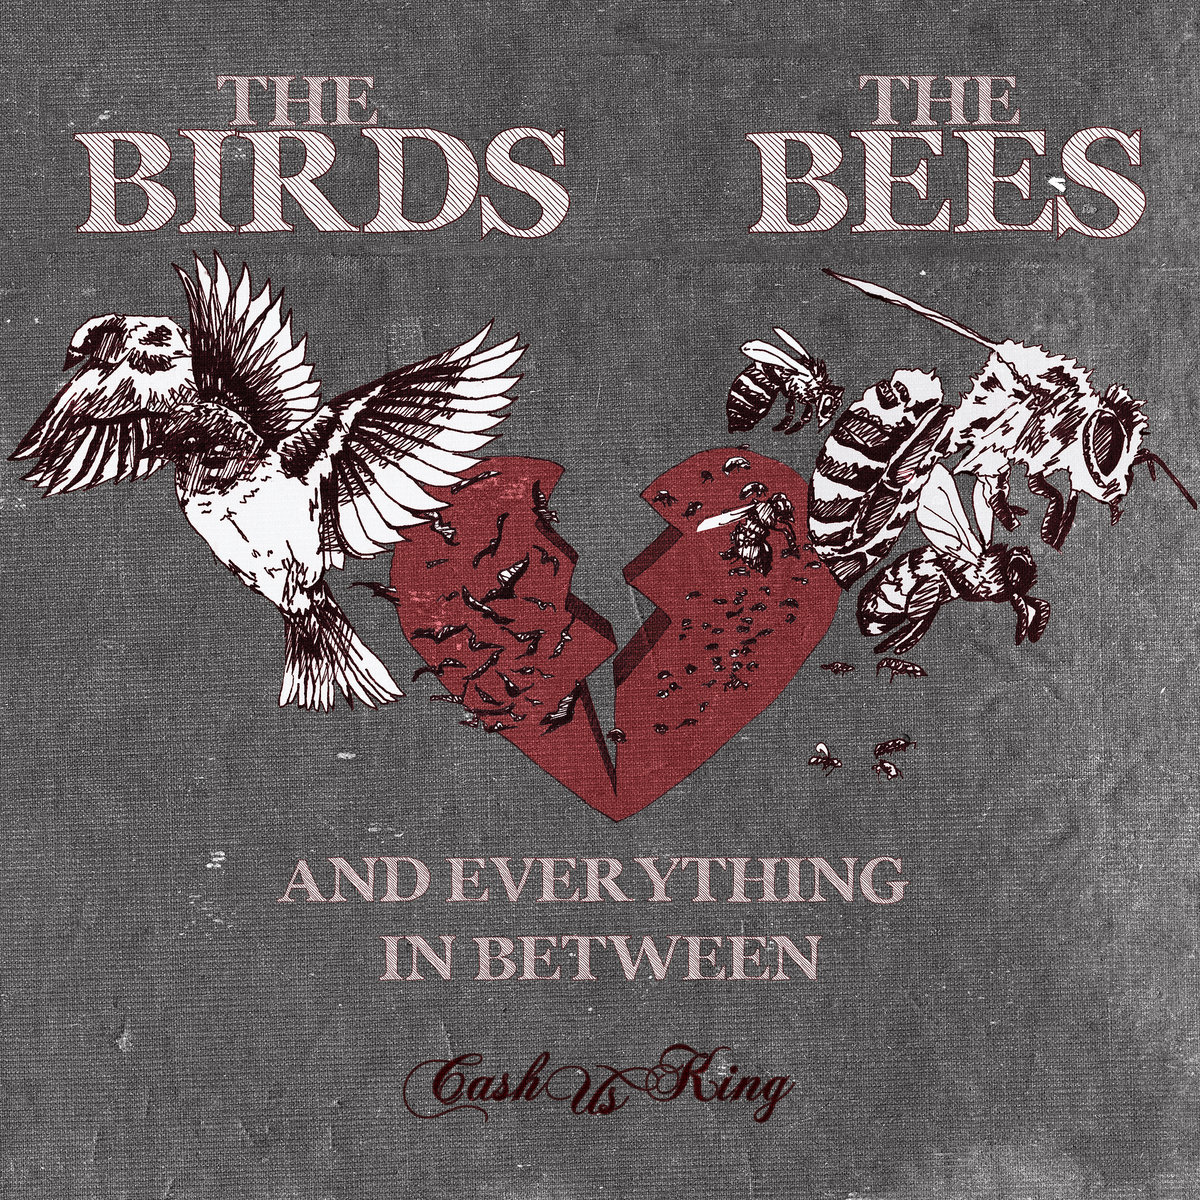 Cashus_king_presentan__the_birds__the_bees__and_everything_in_between__